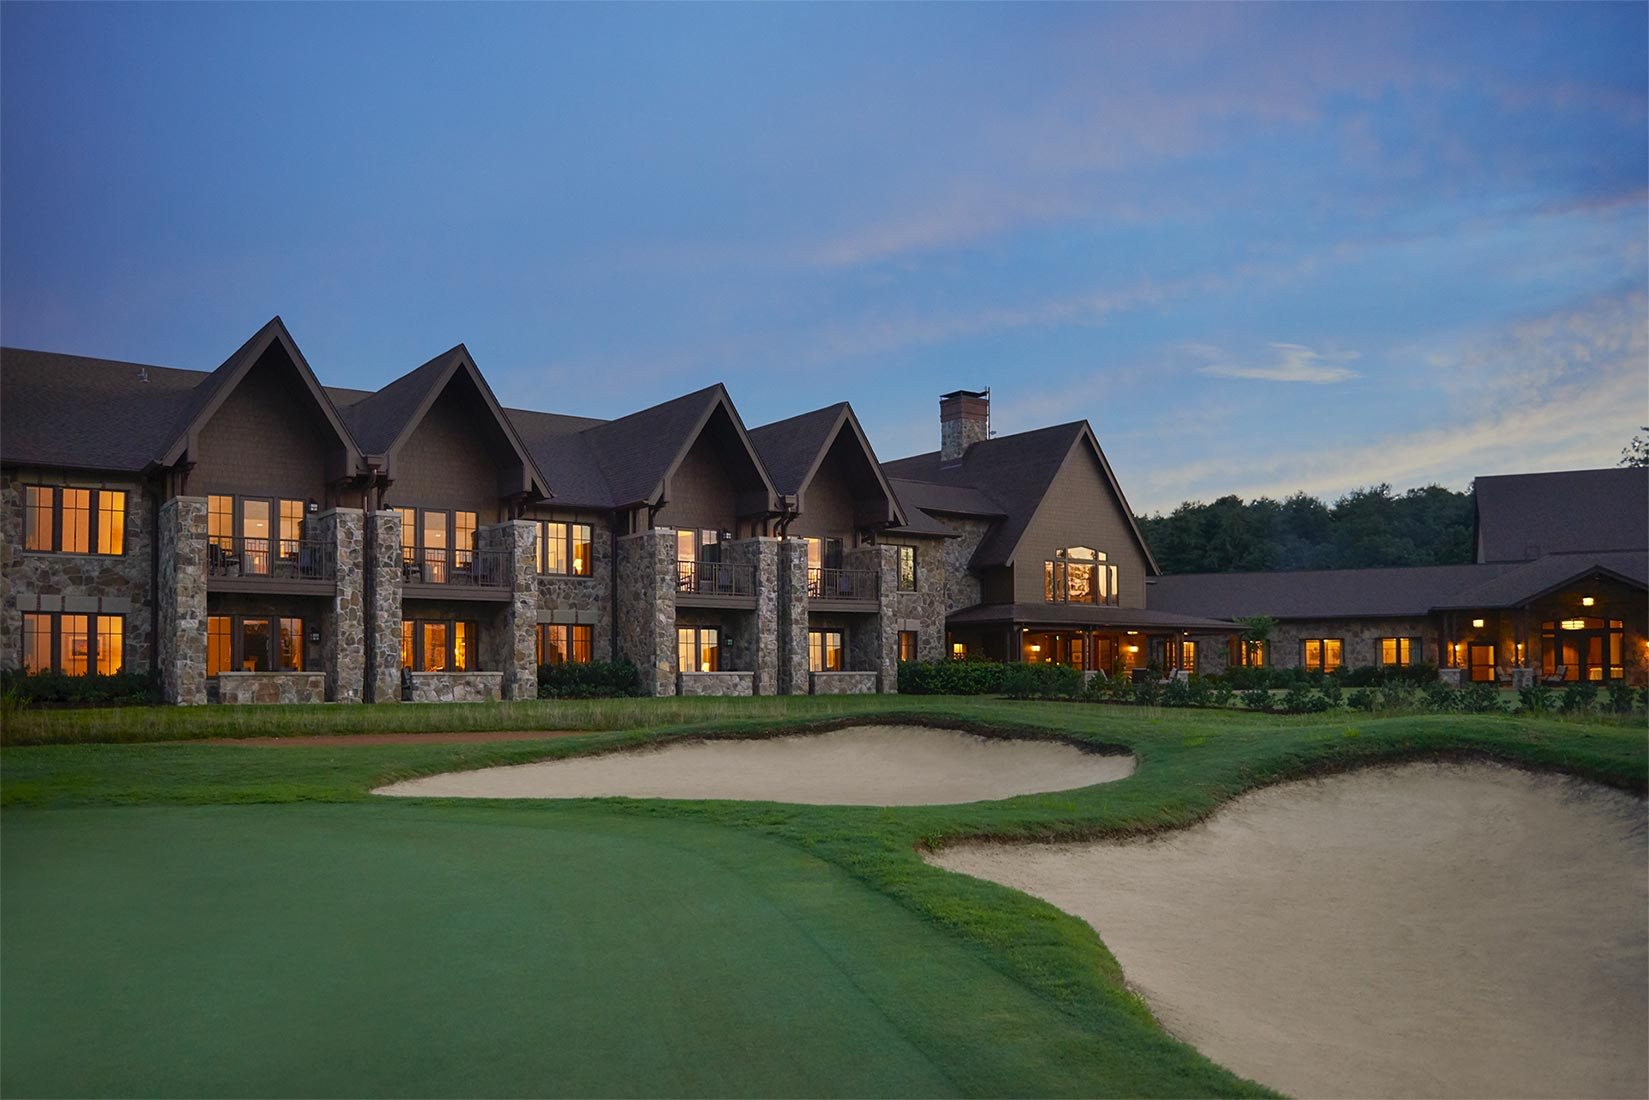 exterior of property at night with golf course in front